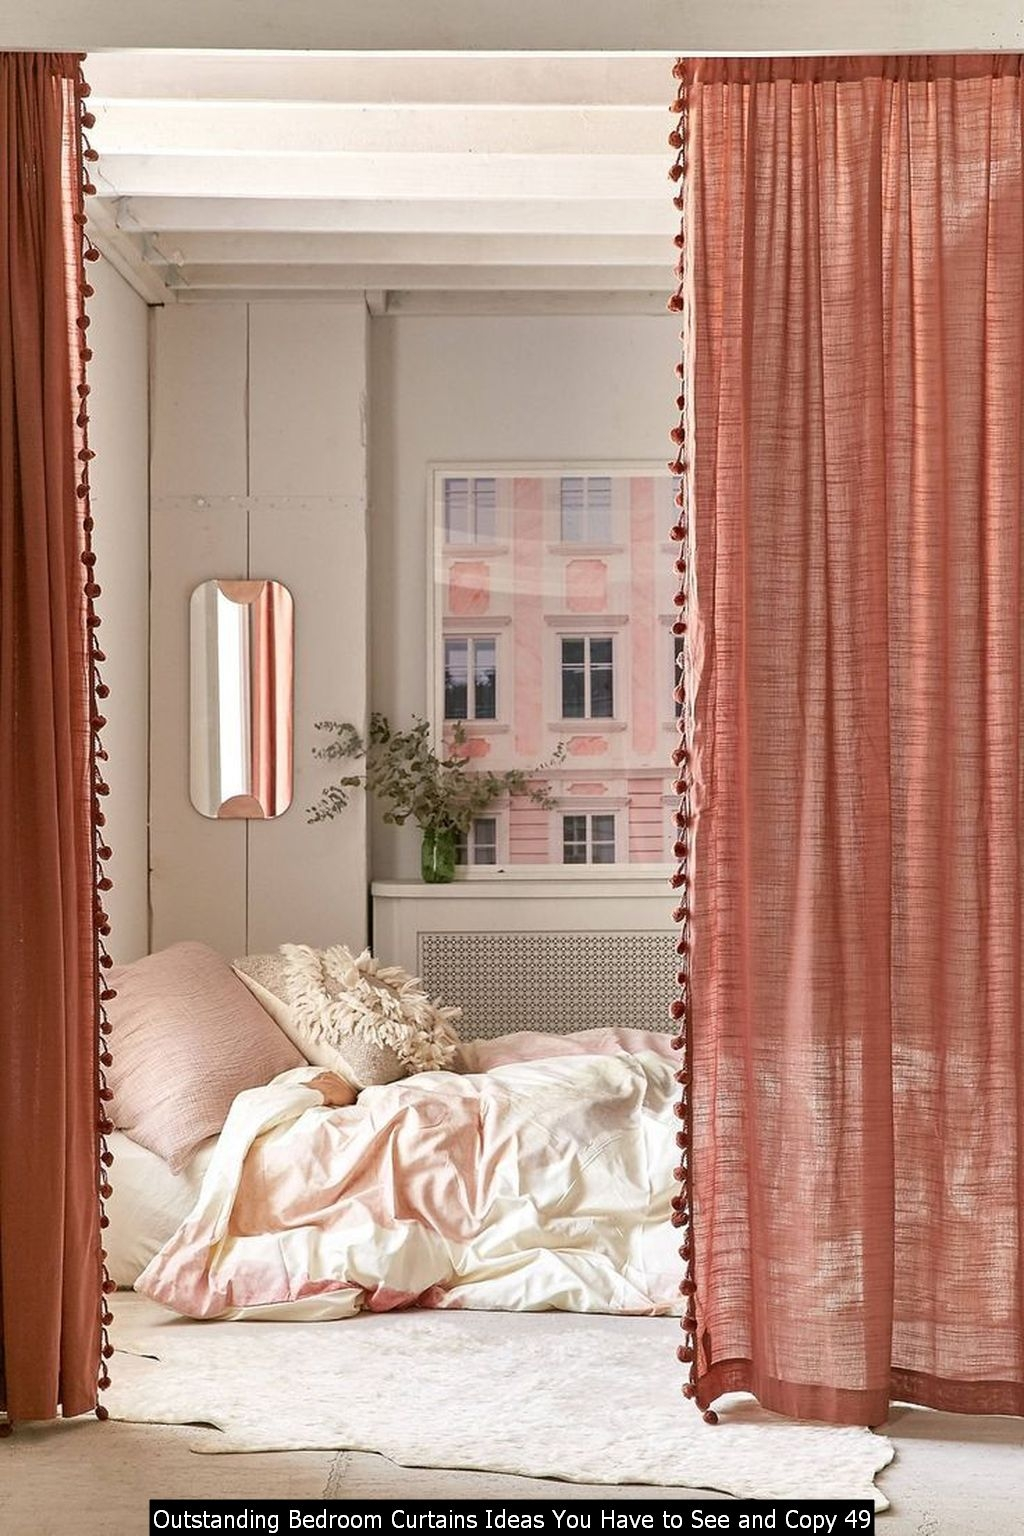 Outstanding Bedroom Curtains Ideas You Have To See And Copy 49